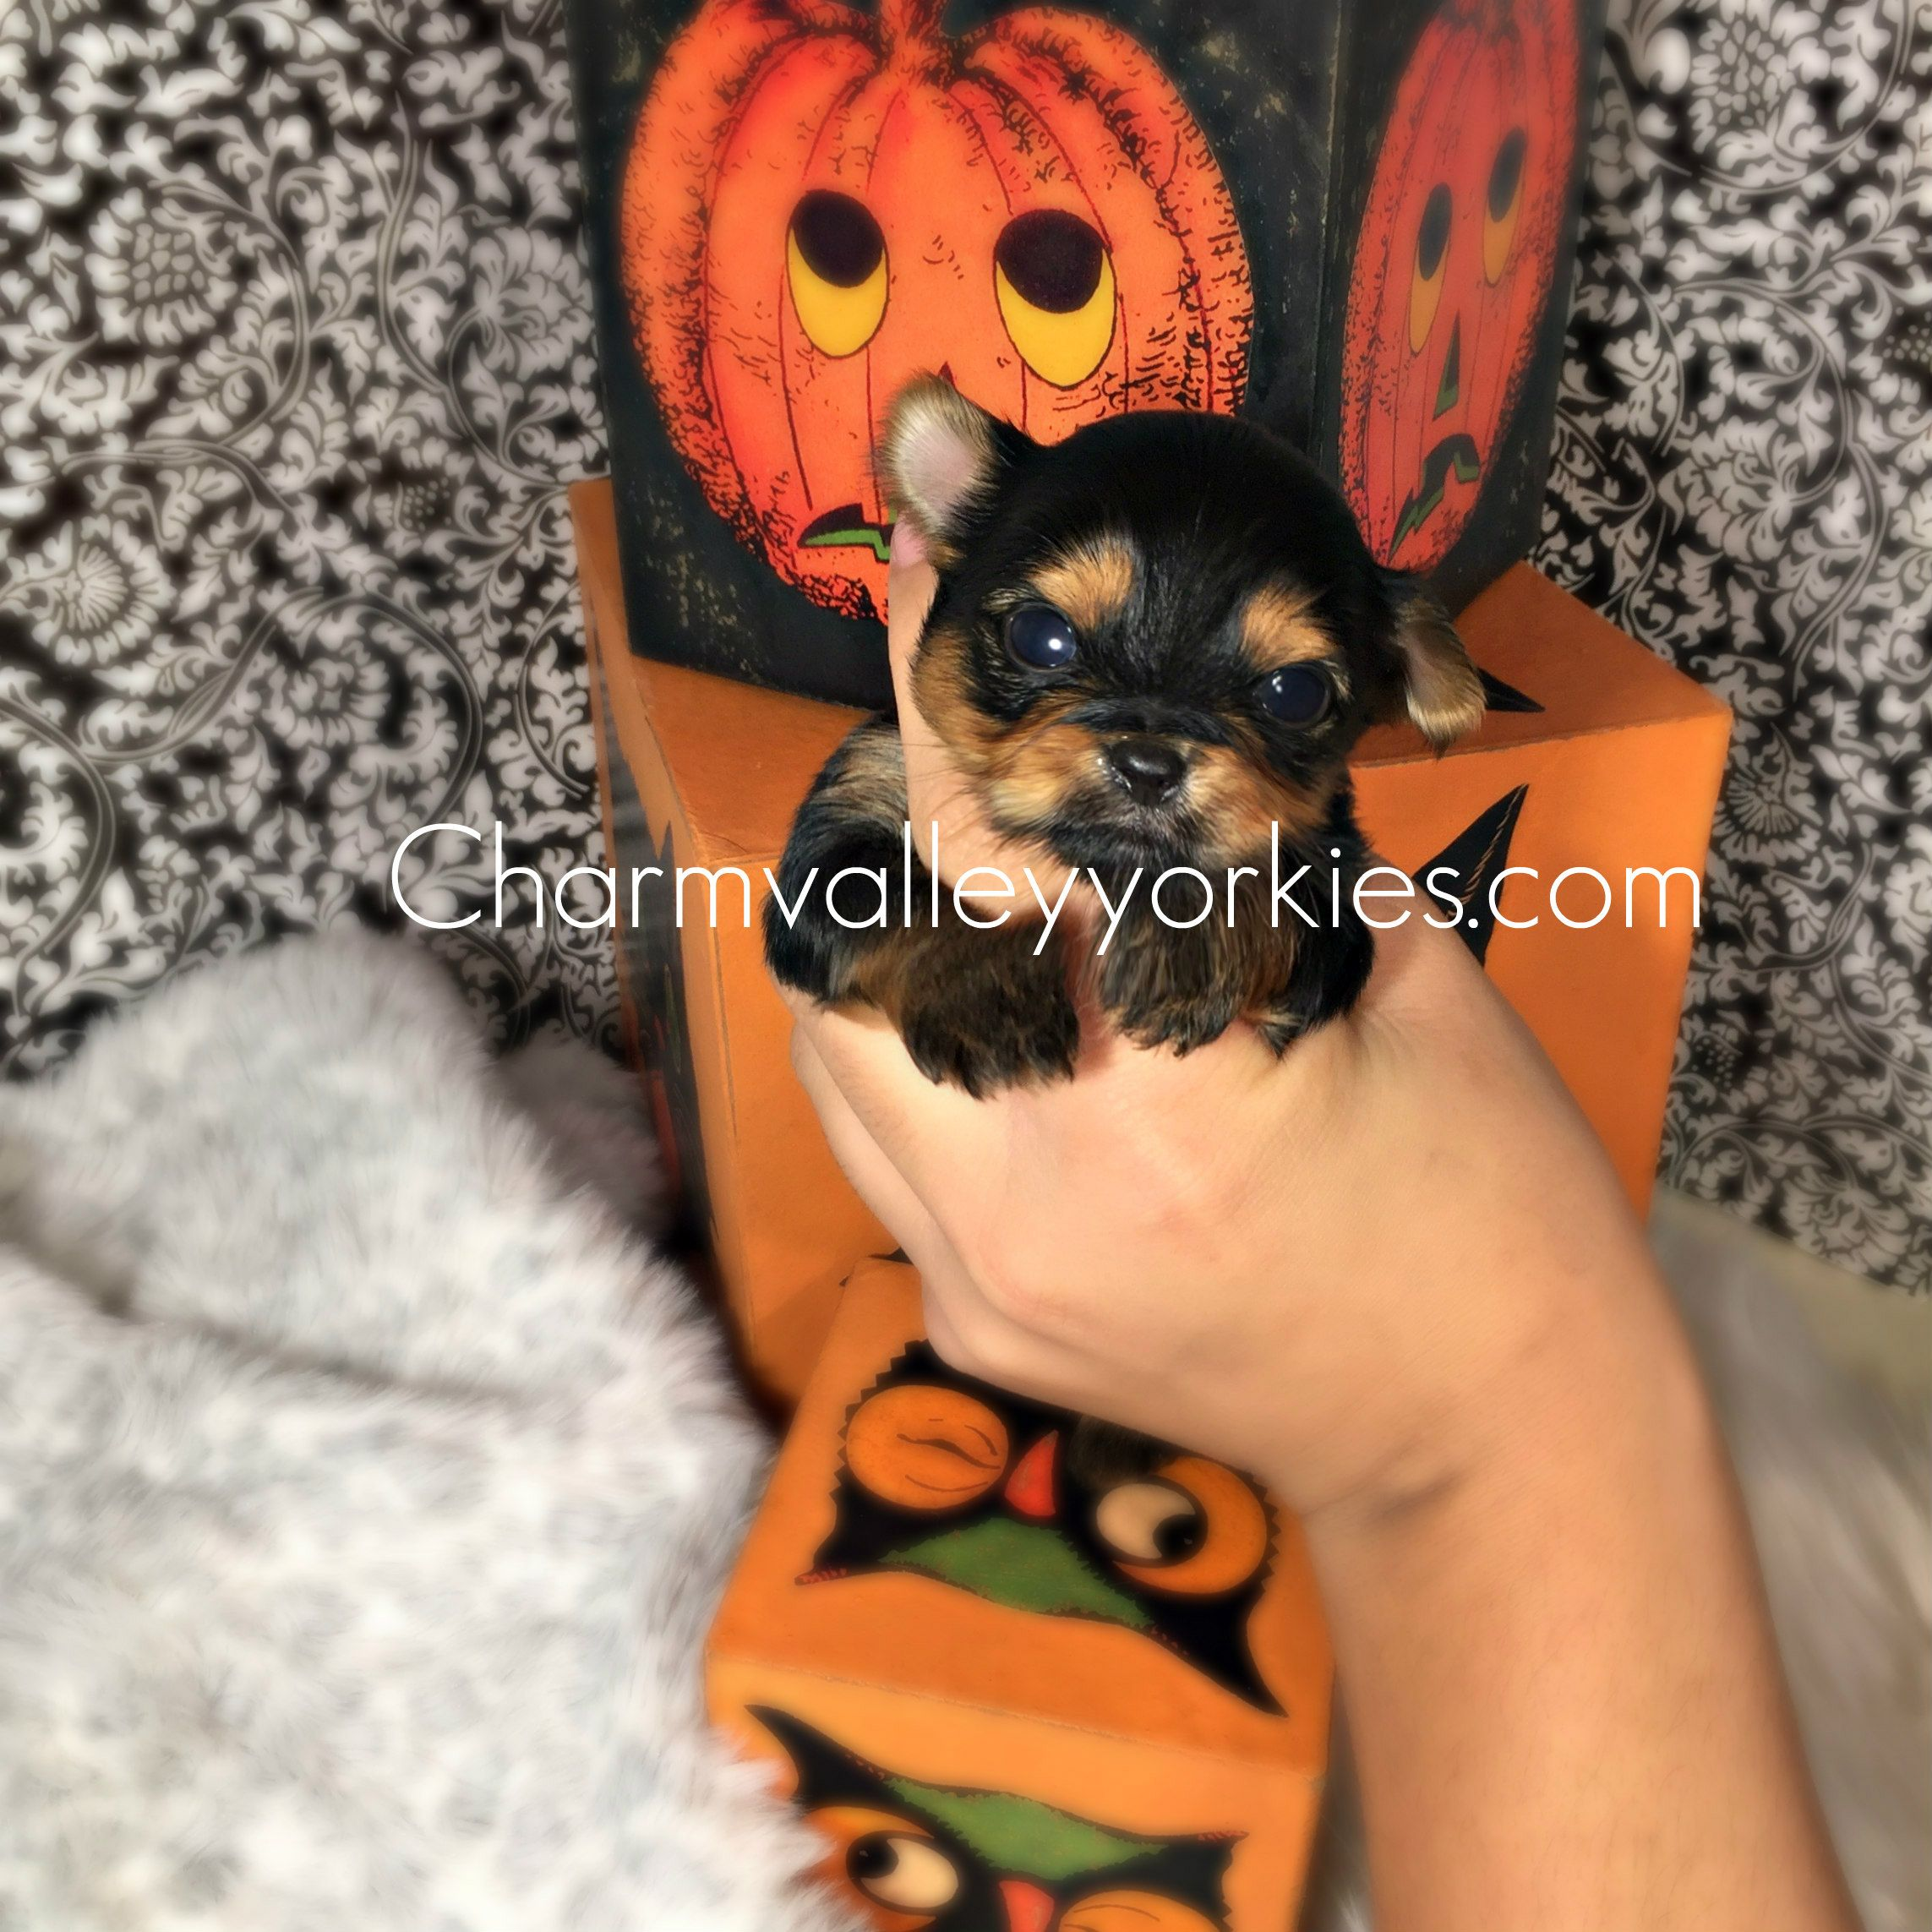 Charm Valley Yorkies Teacup Yorkies For Sale Teacup Yorkie For Sale Yorkie Yorkies For Sale